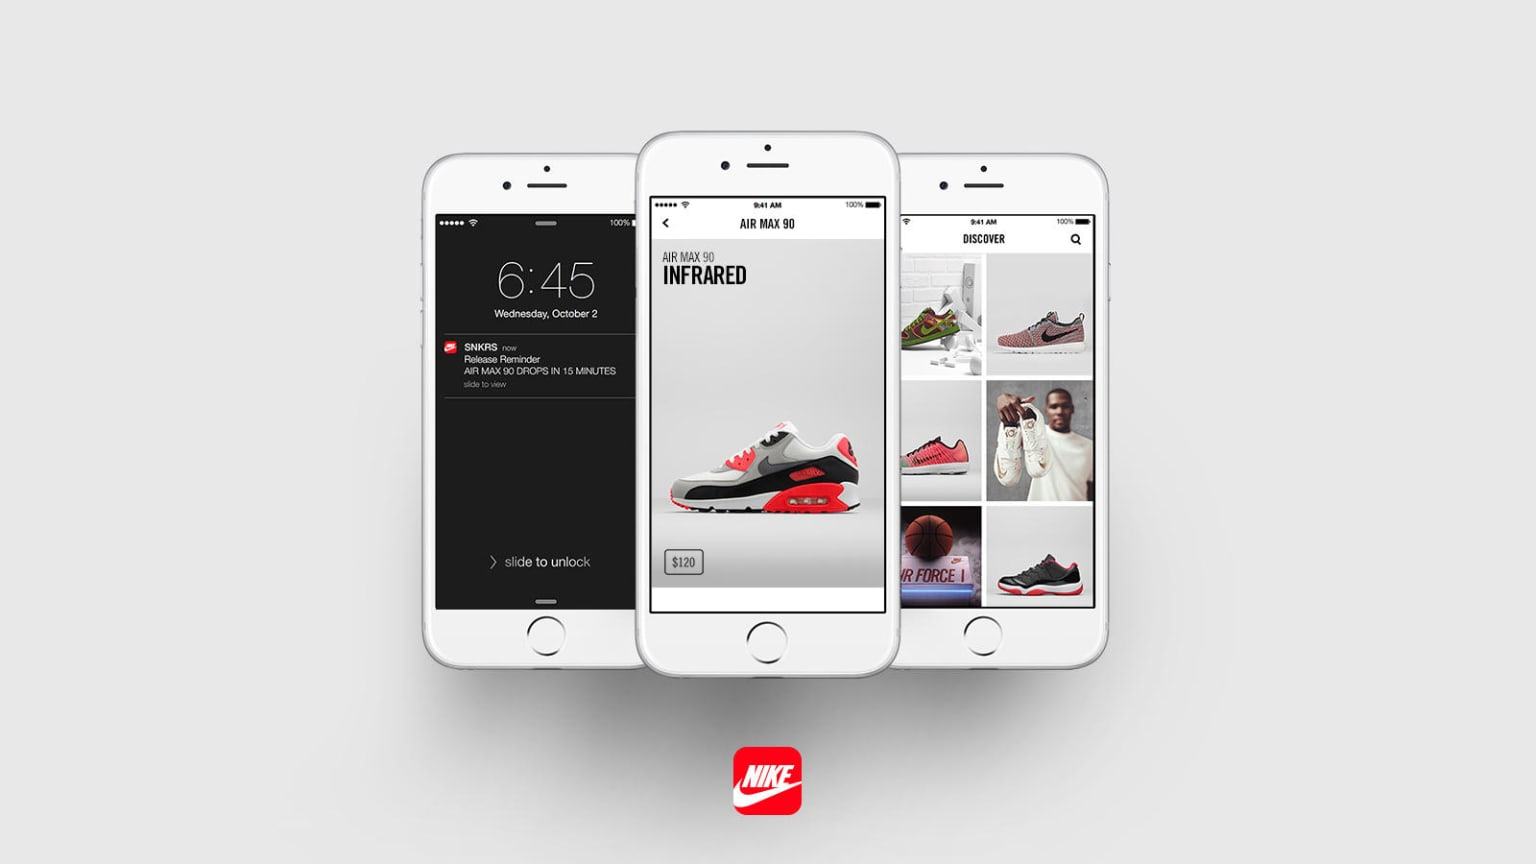 NIKE SNKRS MOBILE APP LAUNCH RECAP – ALL STAR WEEKEND 2015